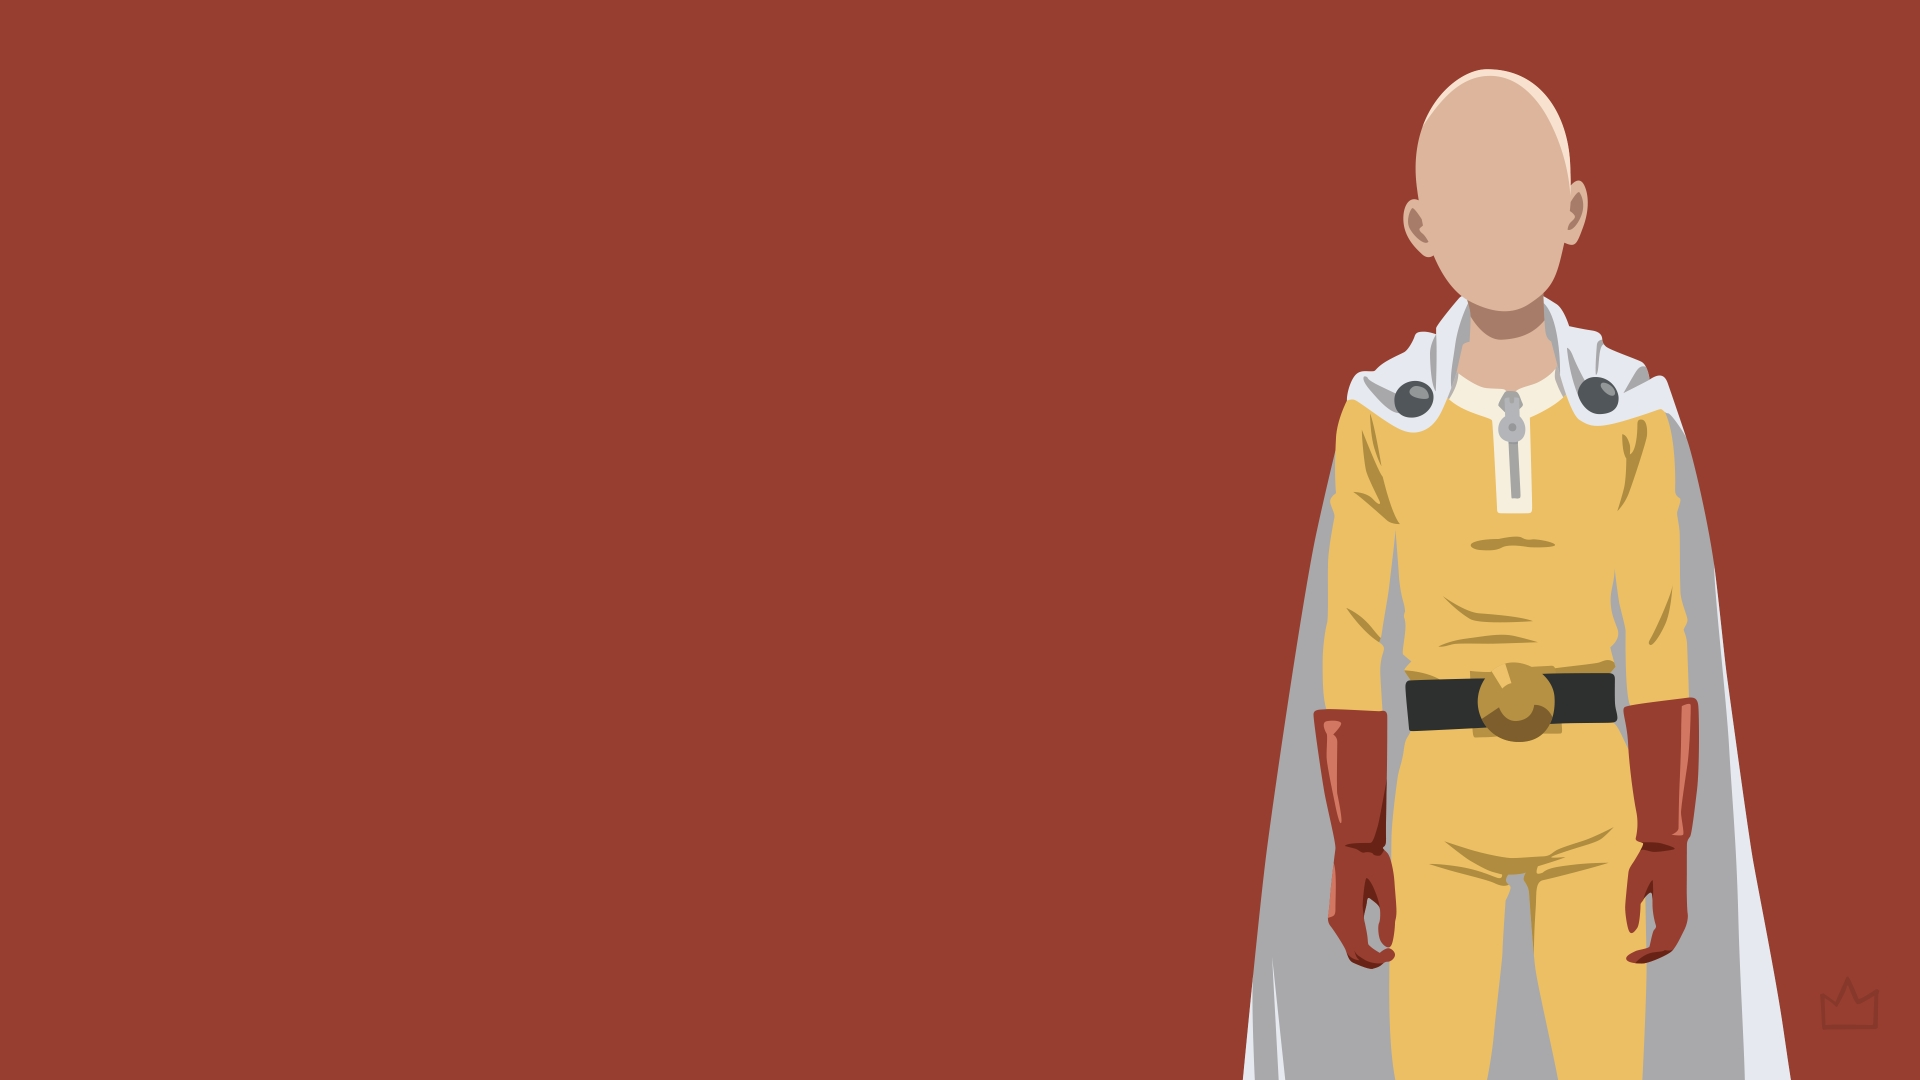 anime one-punch man saitama (one-punch man) wallpaper | one punch